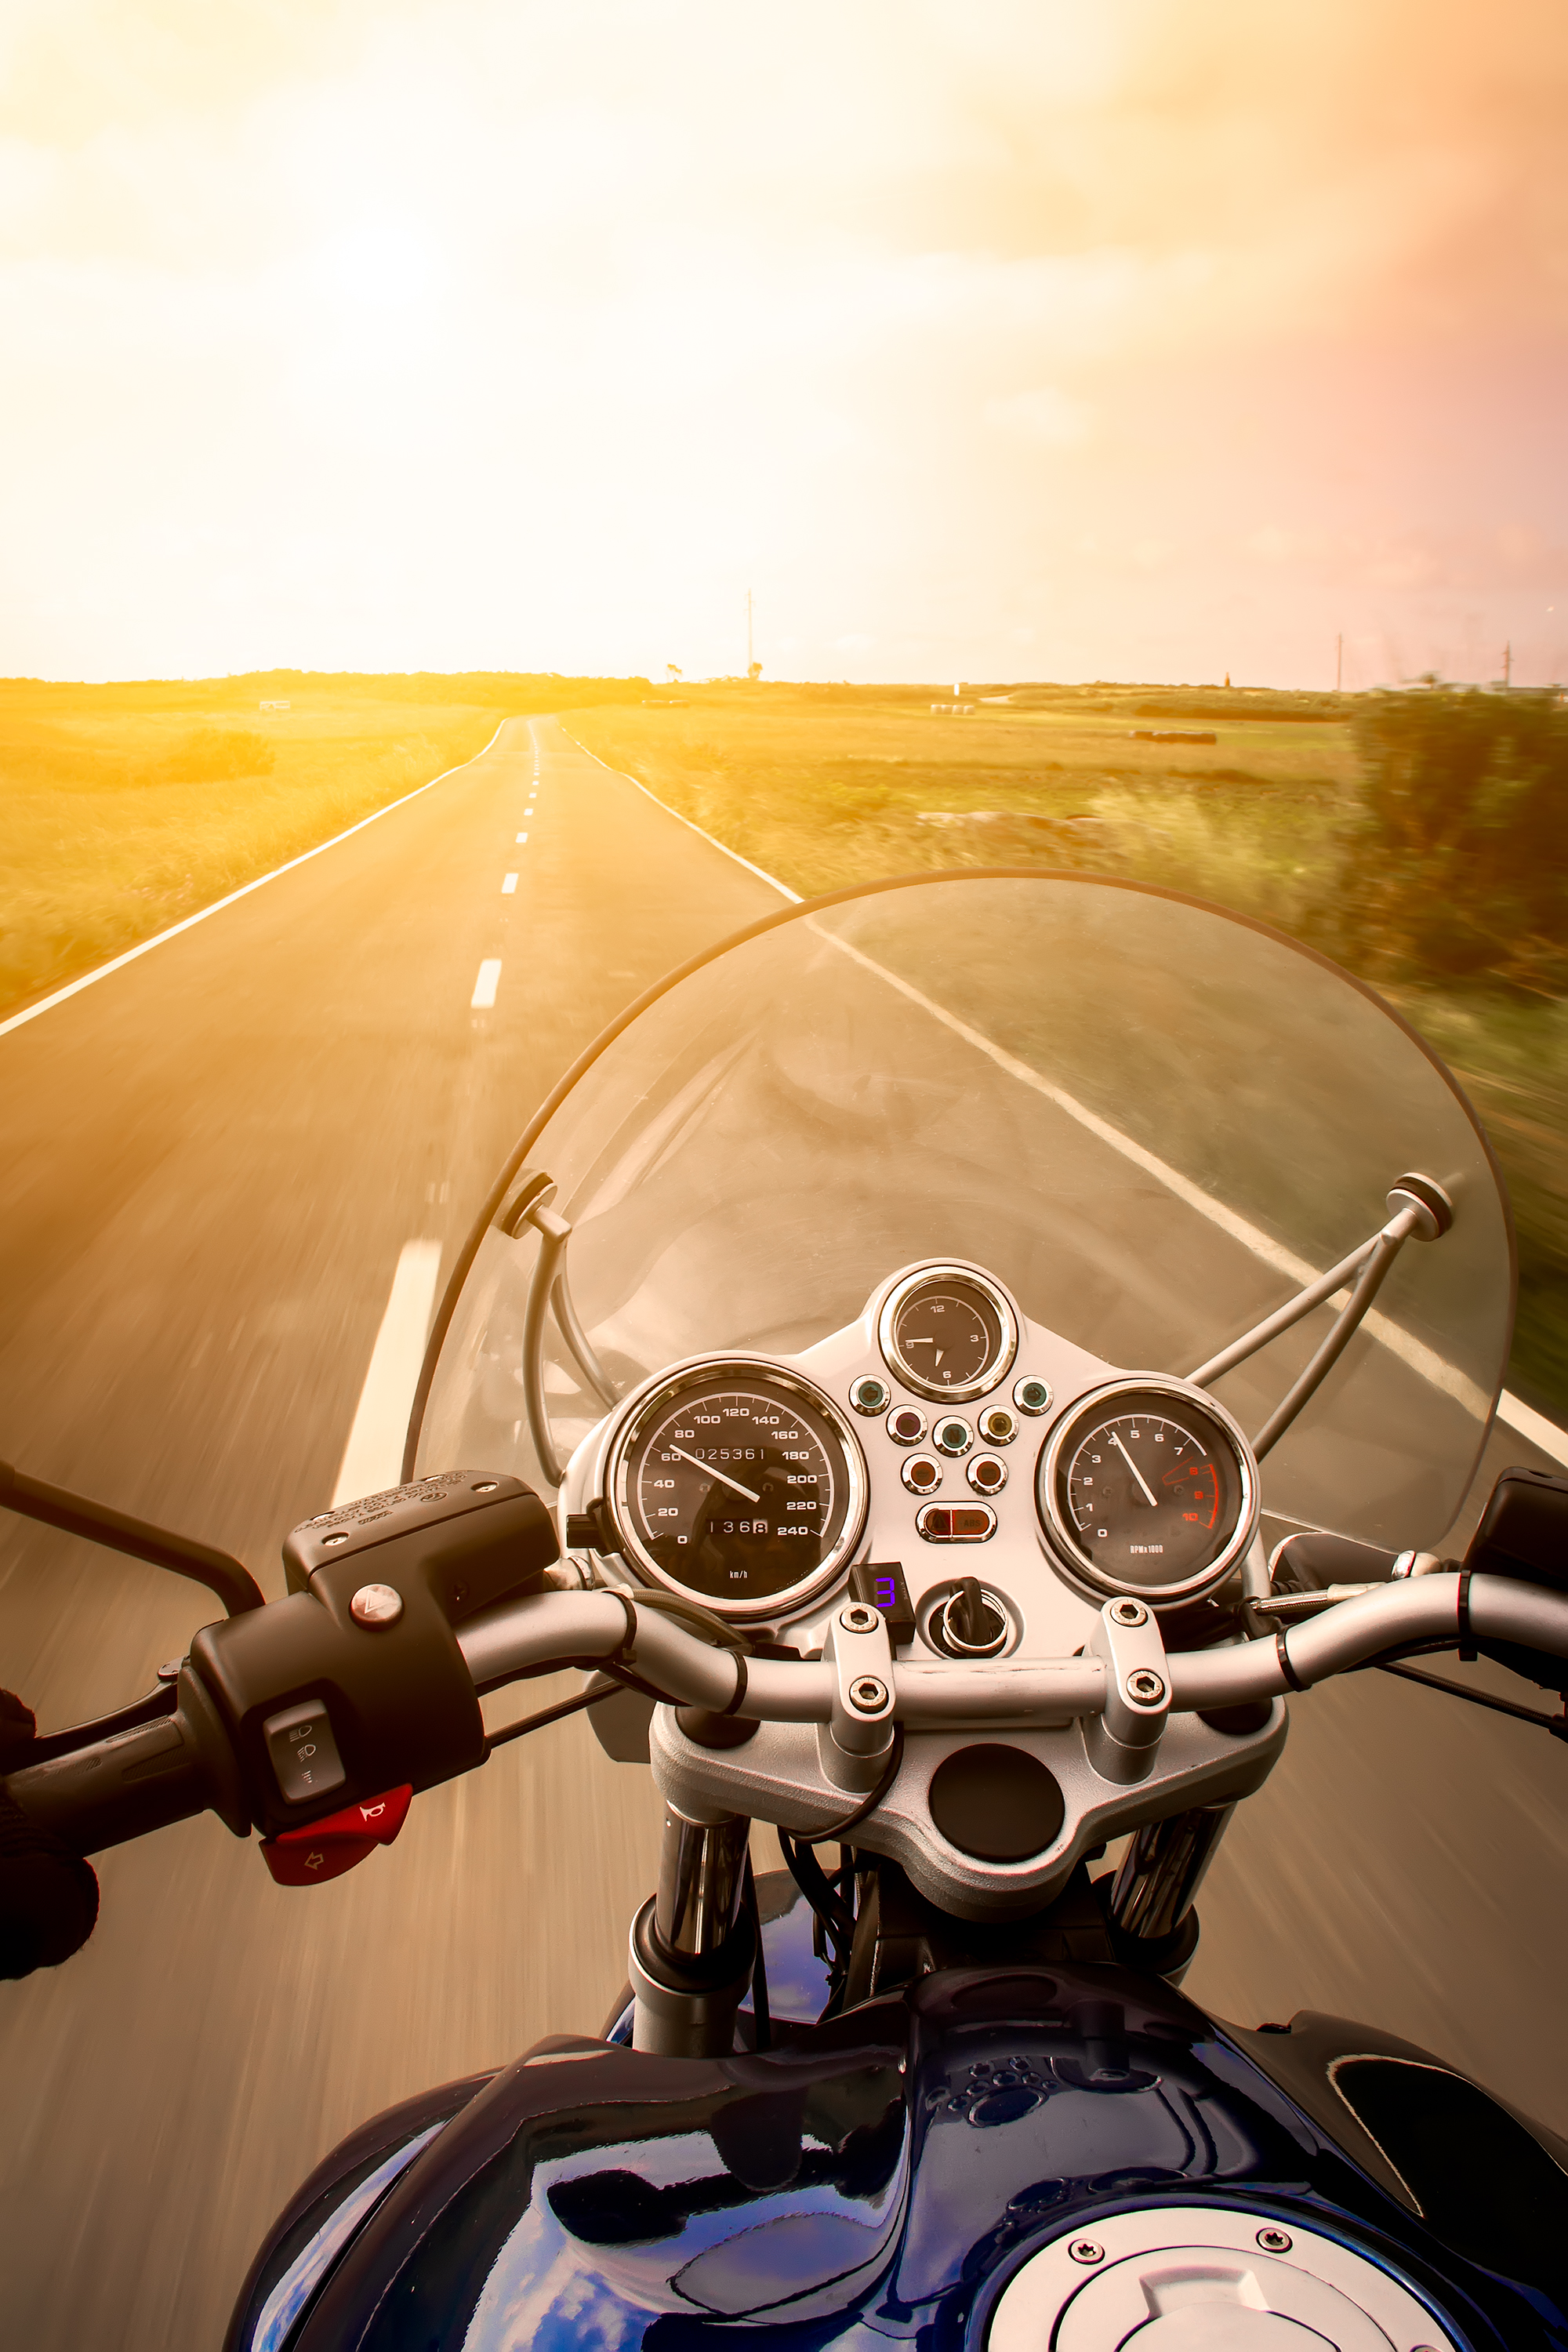 View from a motorcycle on road